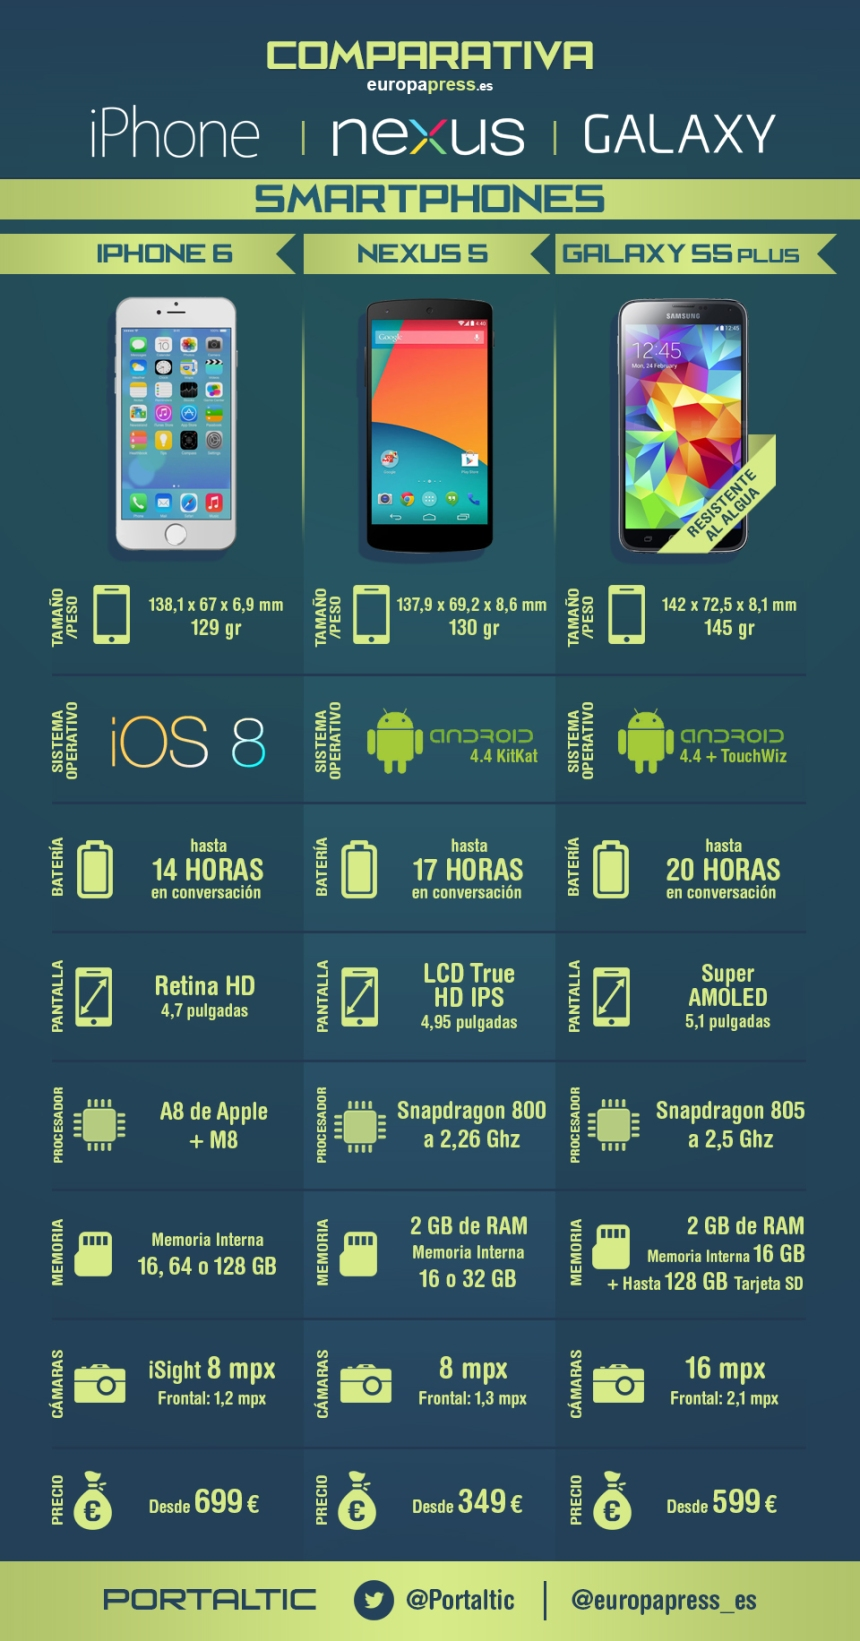 Guerra de Phablets: iPhone vs Nexus vs Galaxy